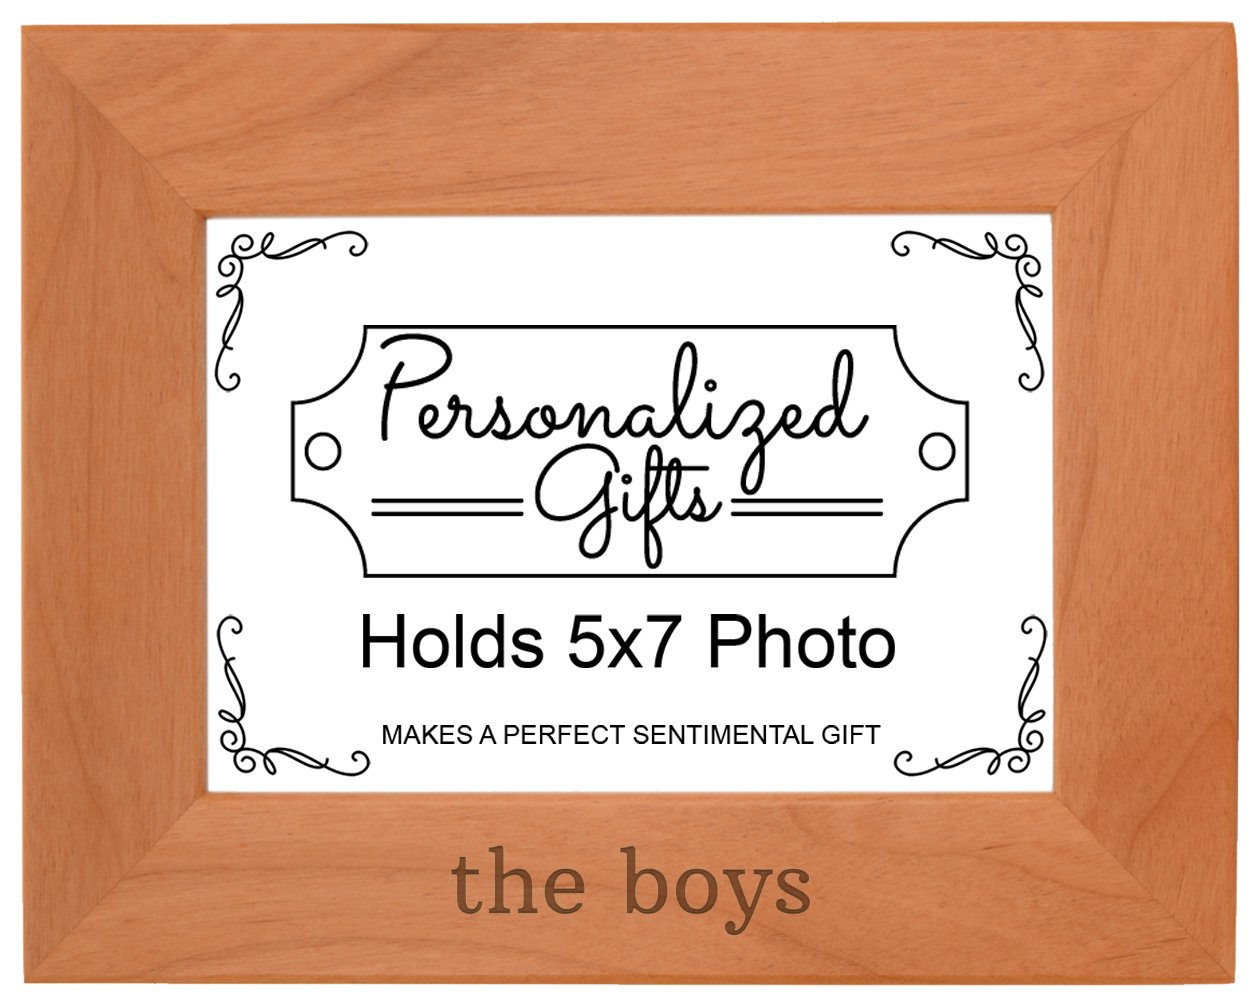 Personalized Gifts Brothers Gift The Boys Father Son Gift Natural Wood Engraved 5x7 Landscape Picture Frame Wood